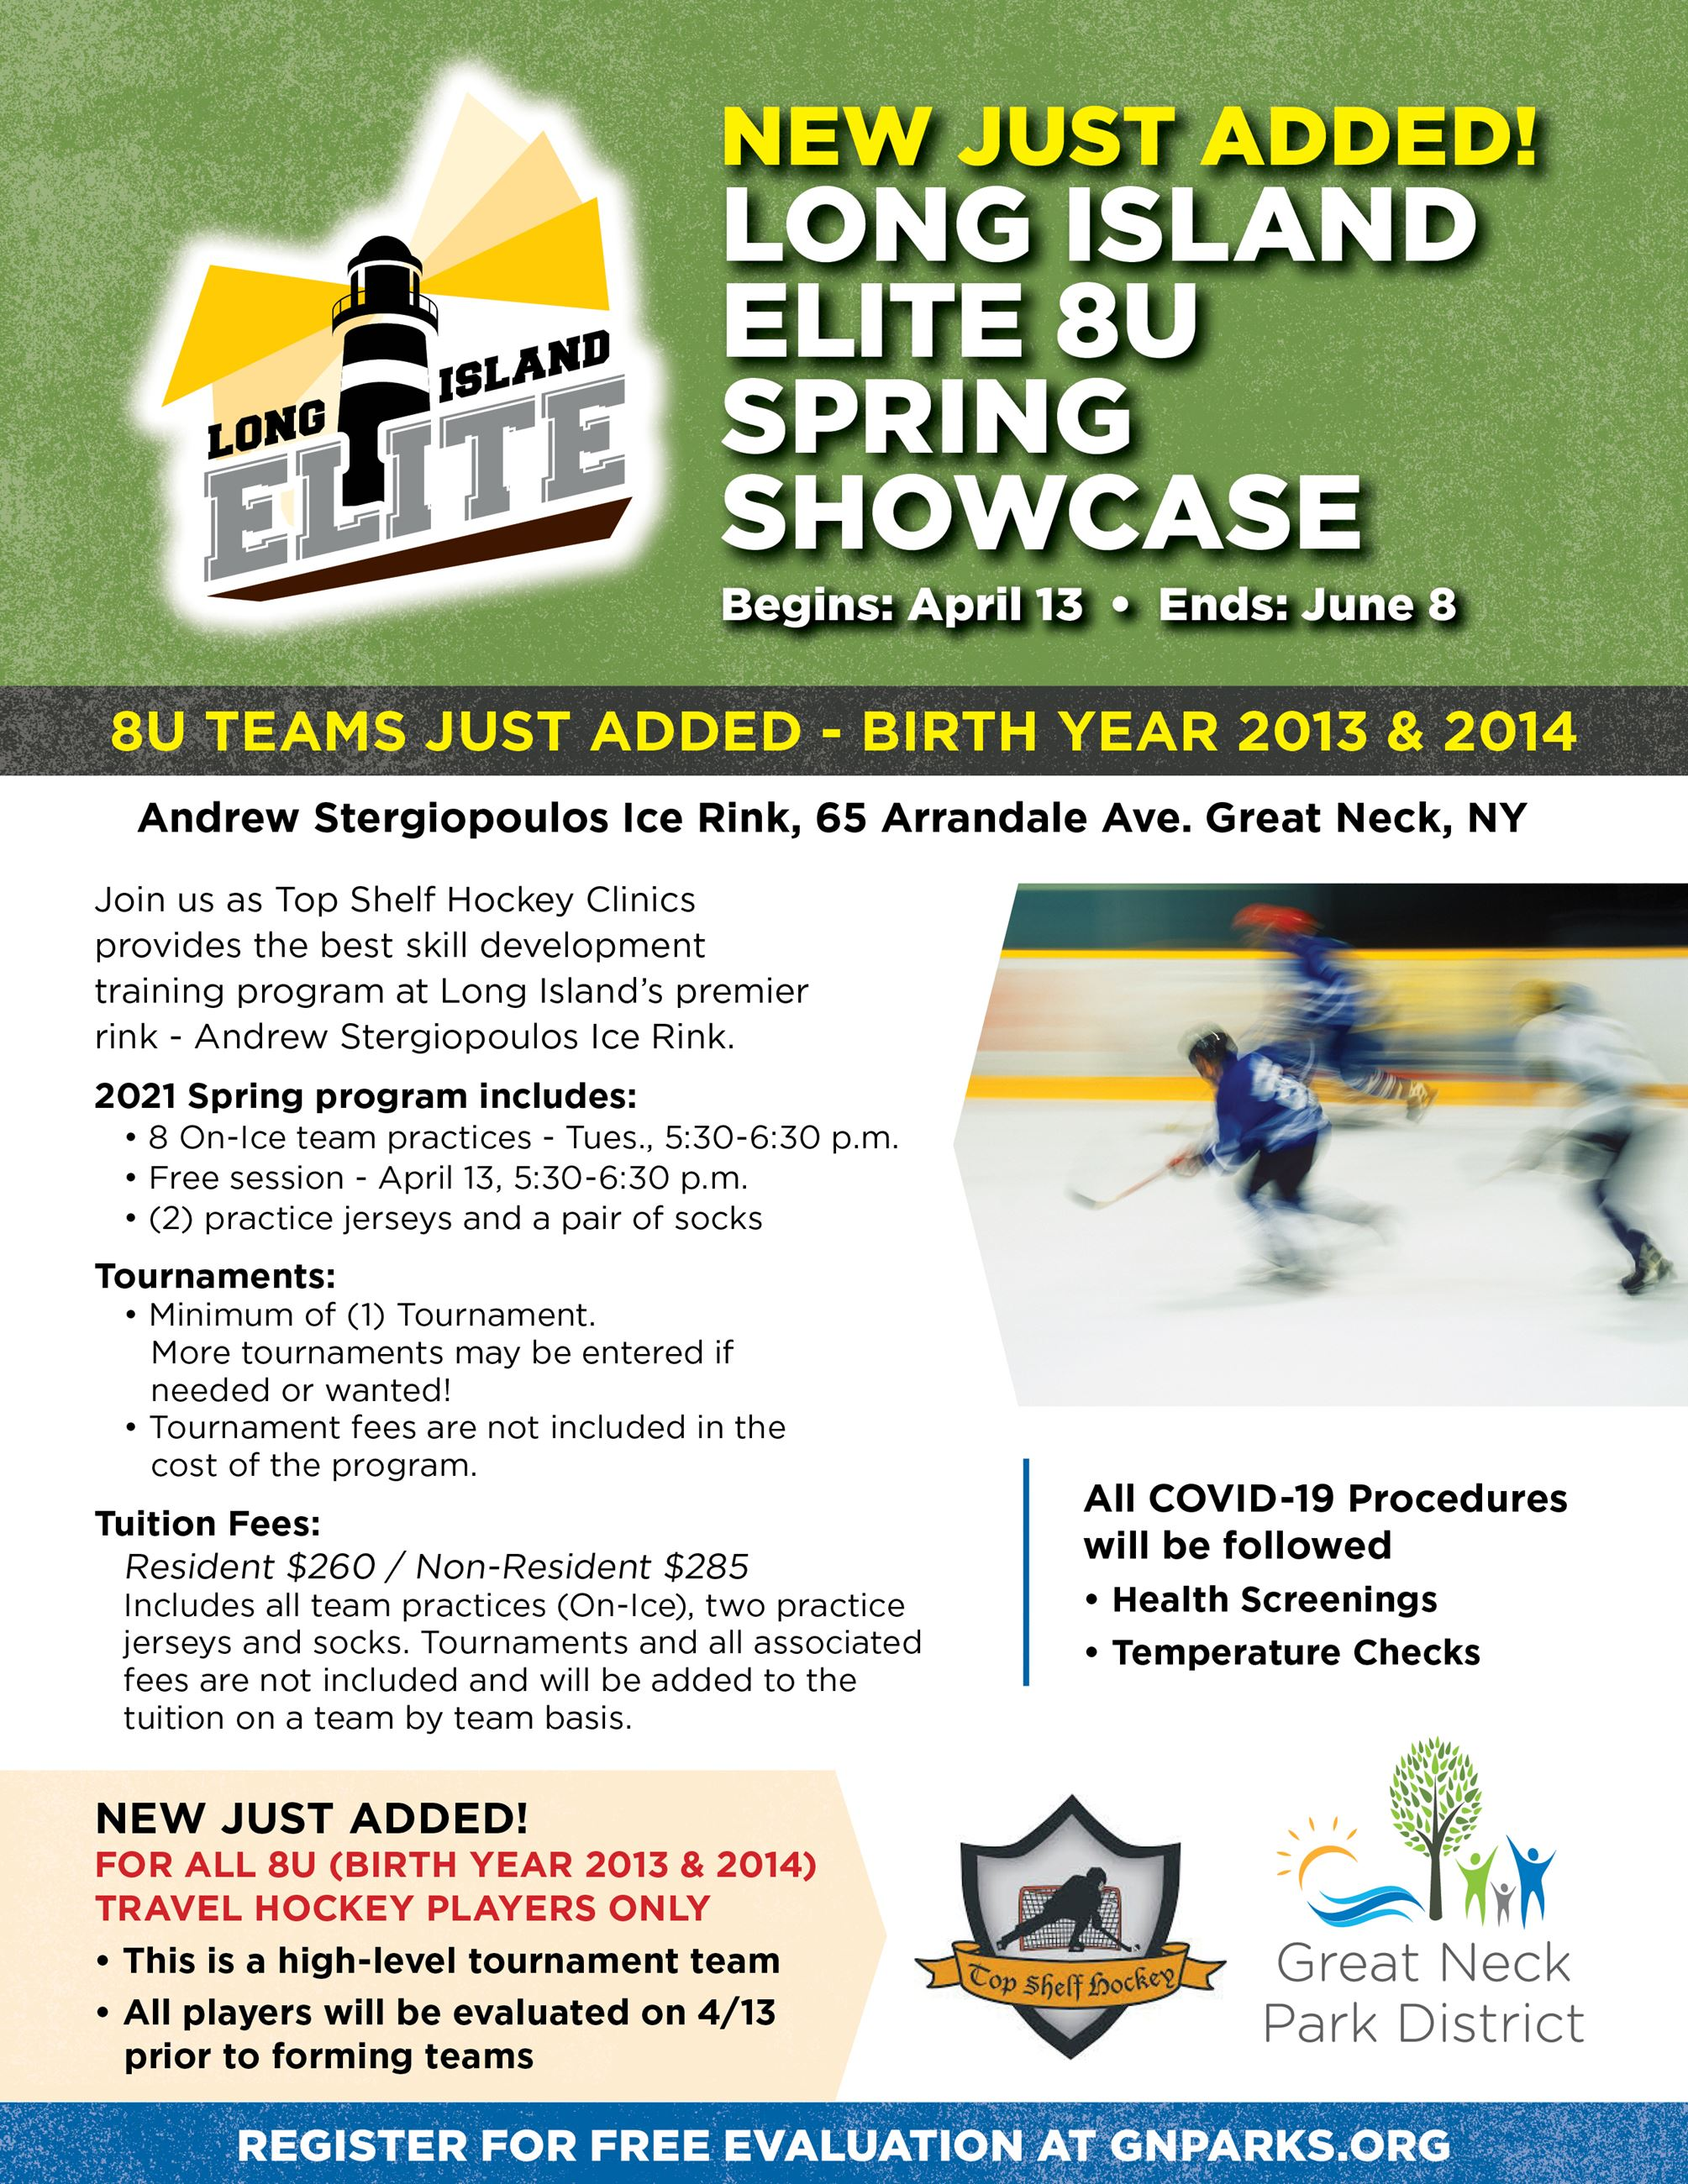 8U Long Island Elite Flyer 2021 - NEW JUST ADDED